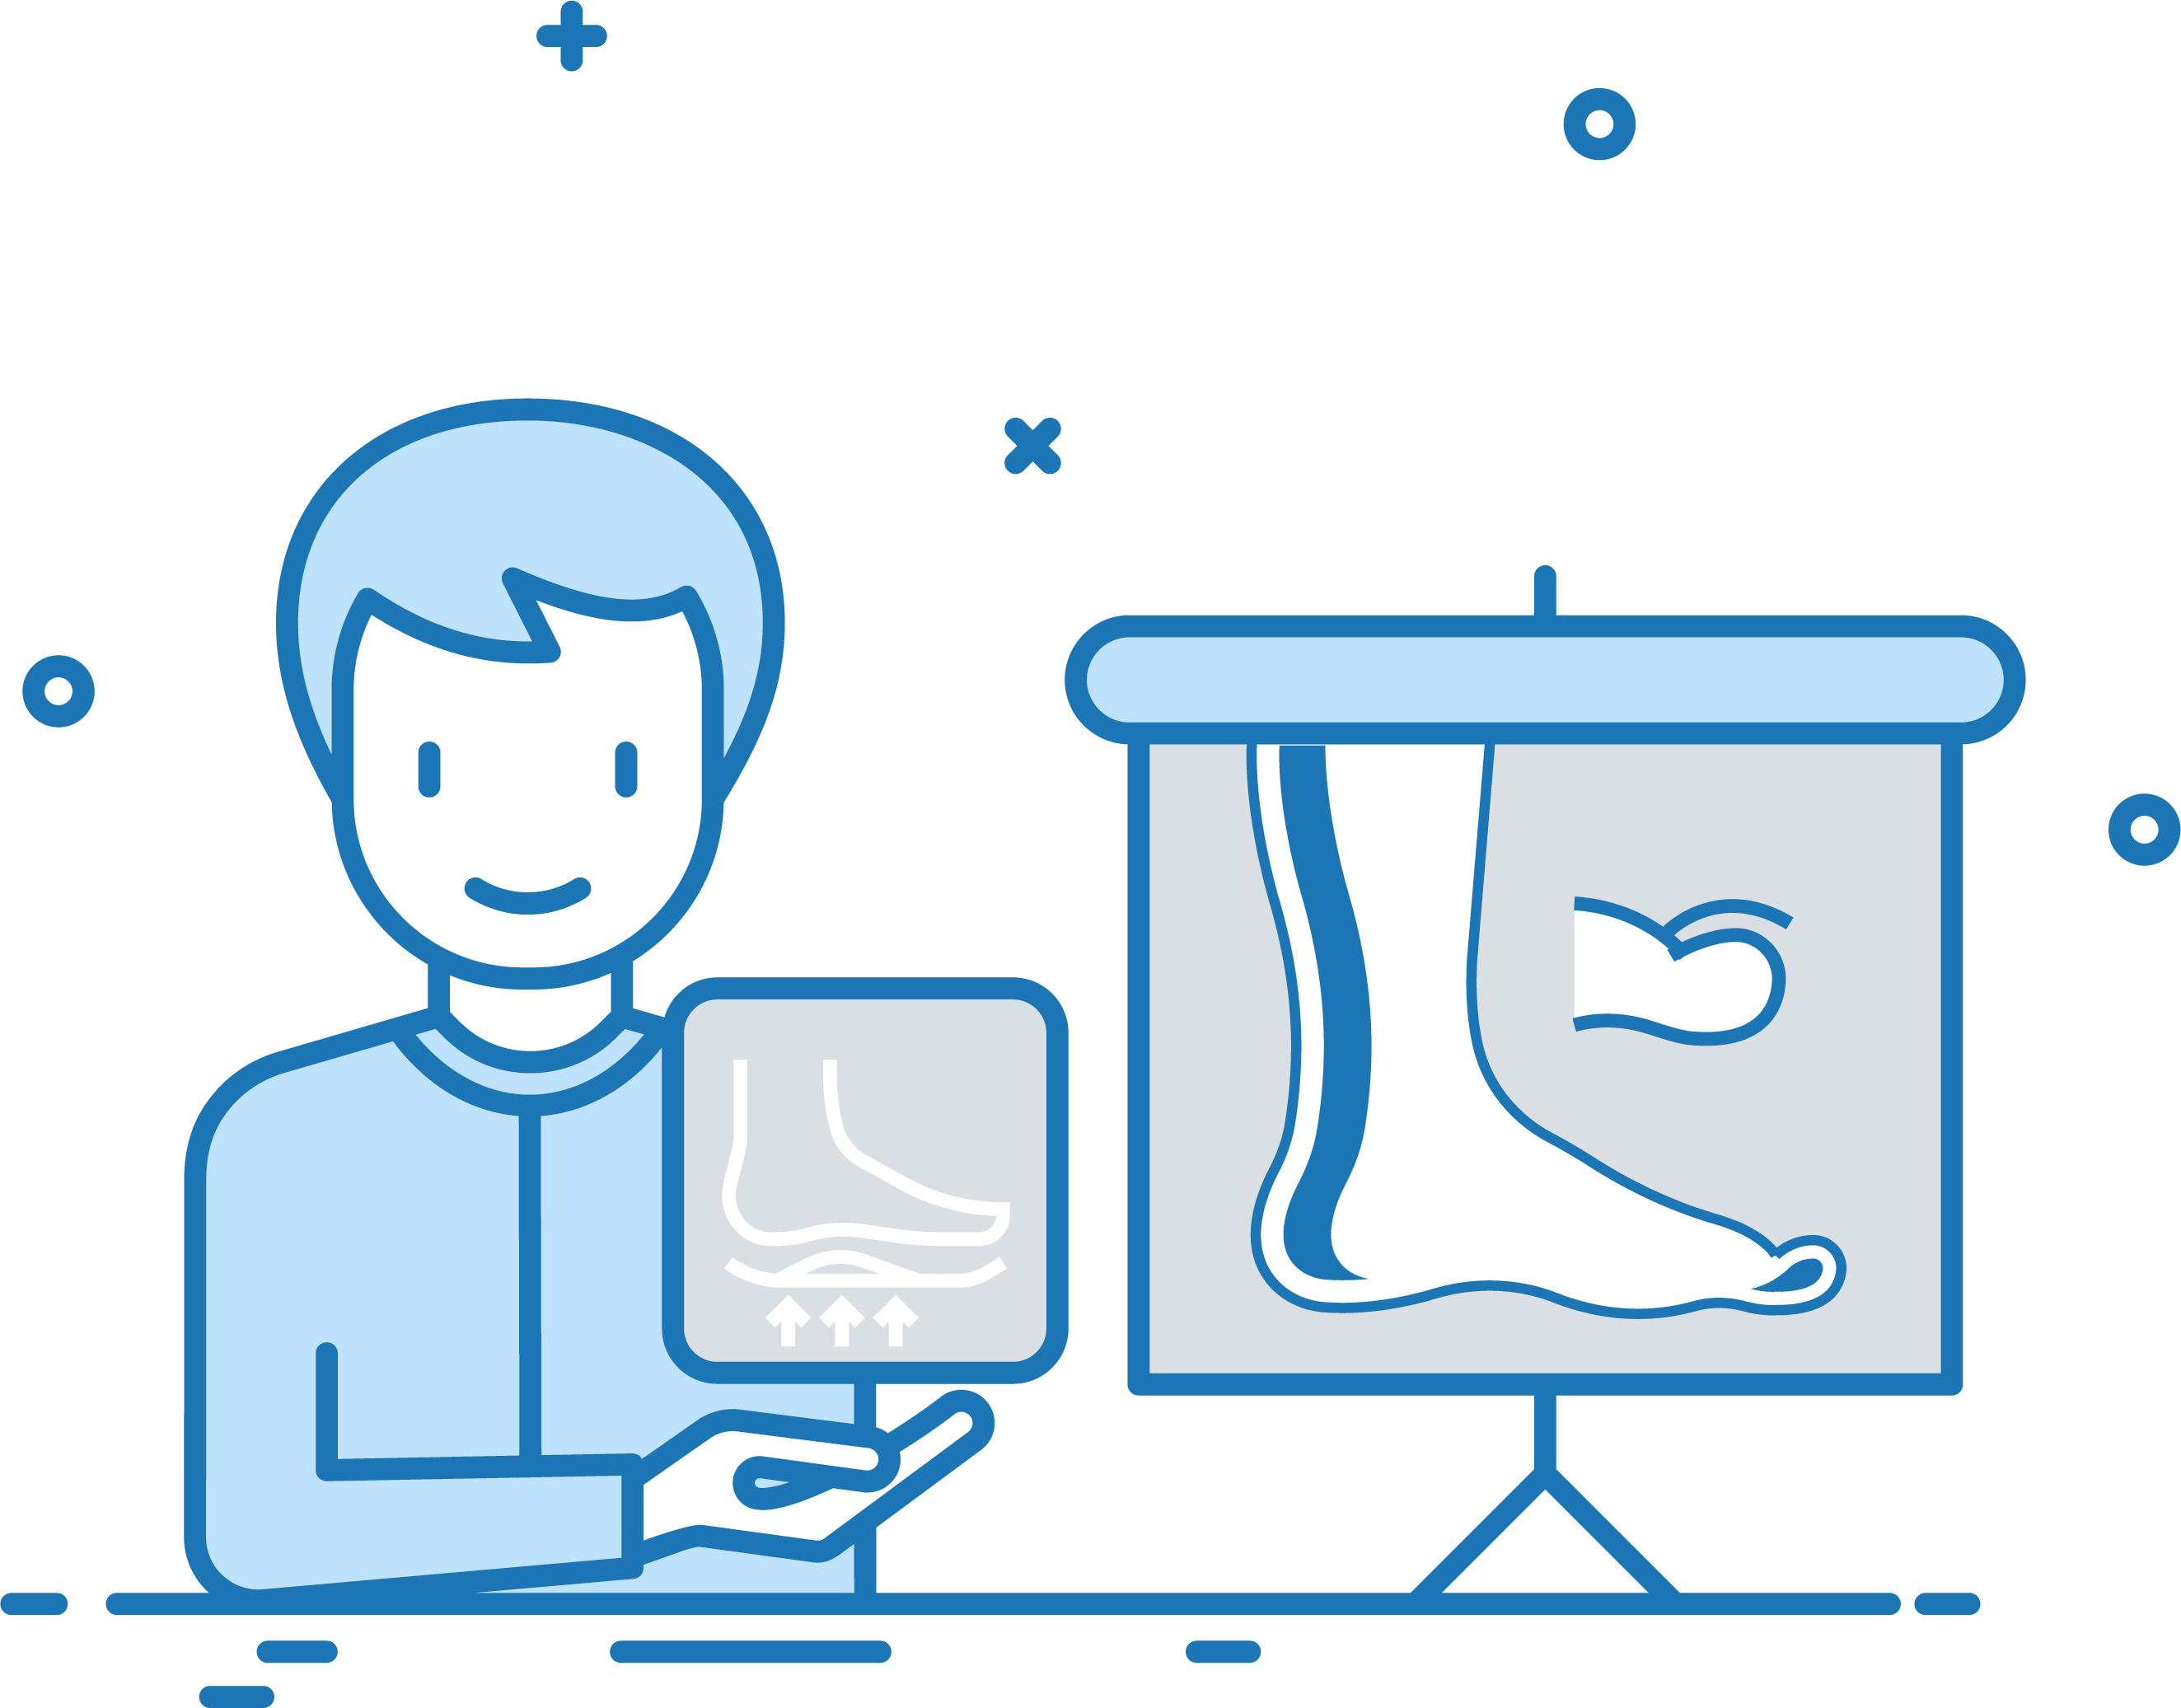 An icon showing a patient with insurance coverage for orthotics.